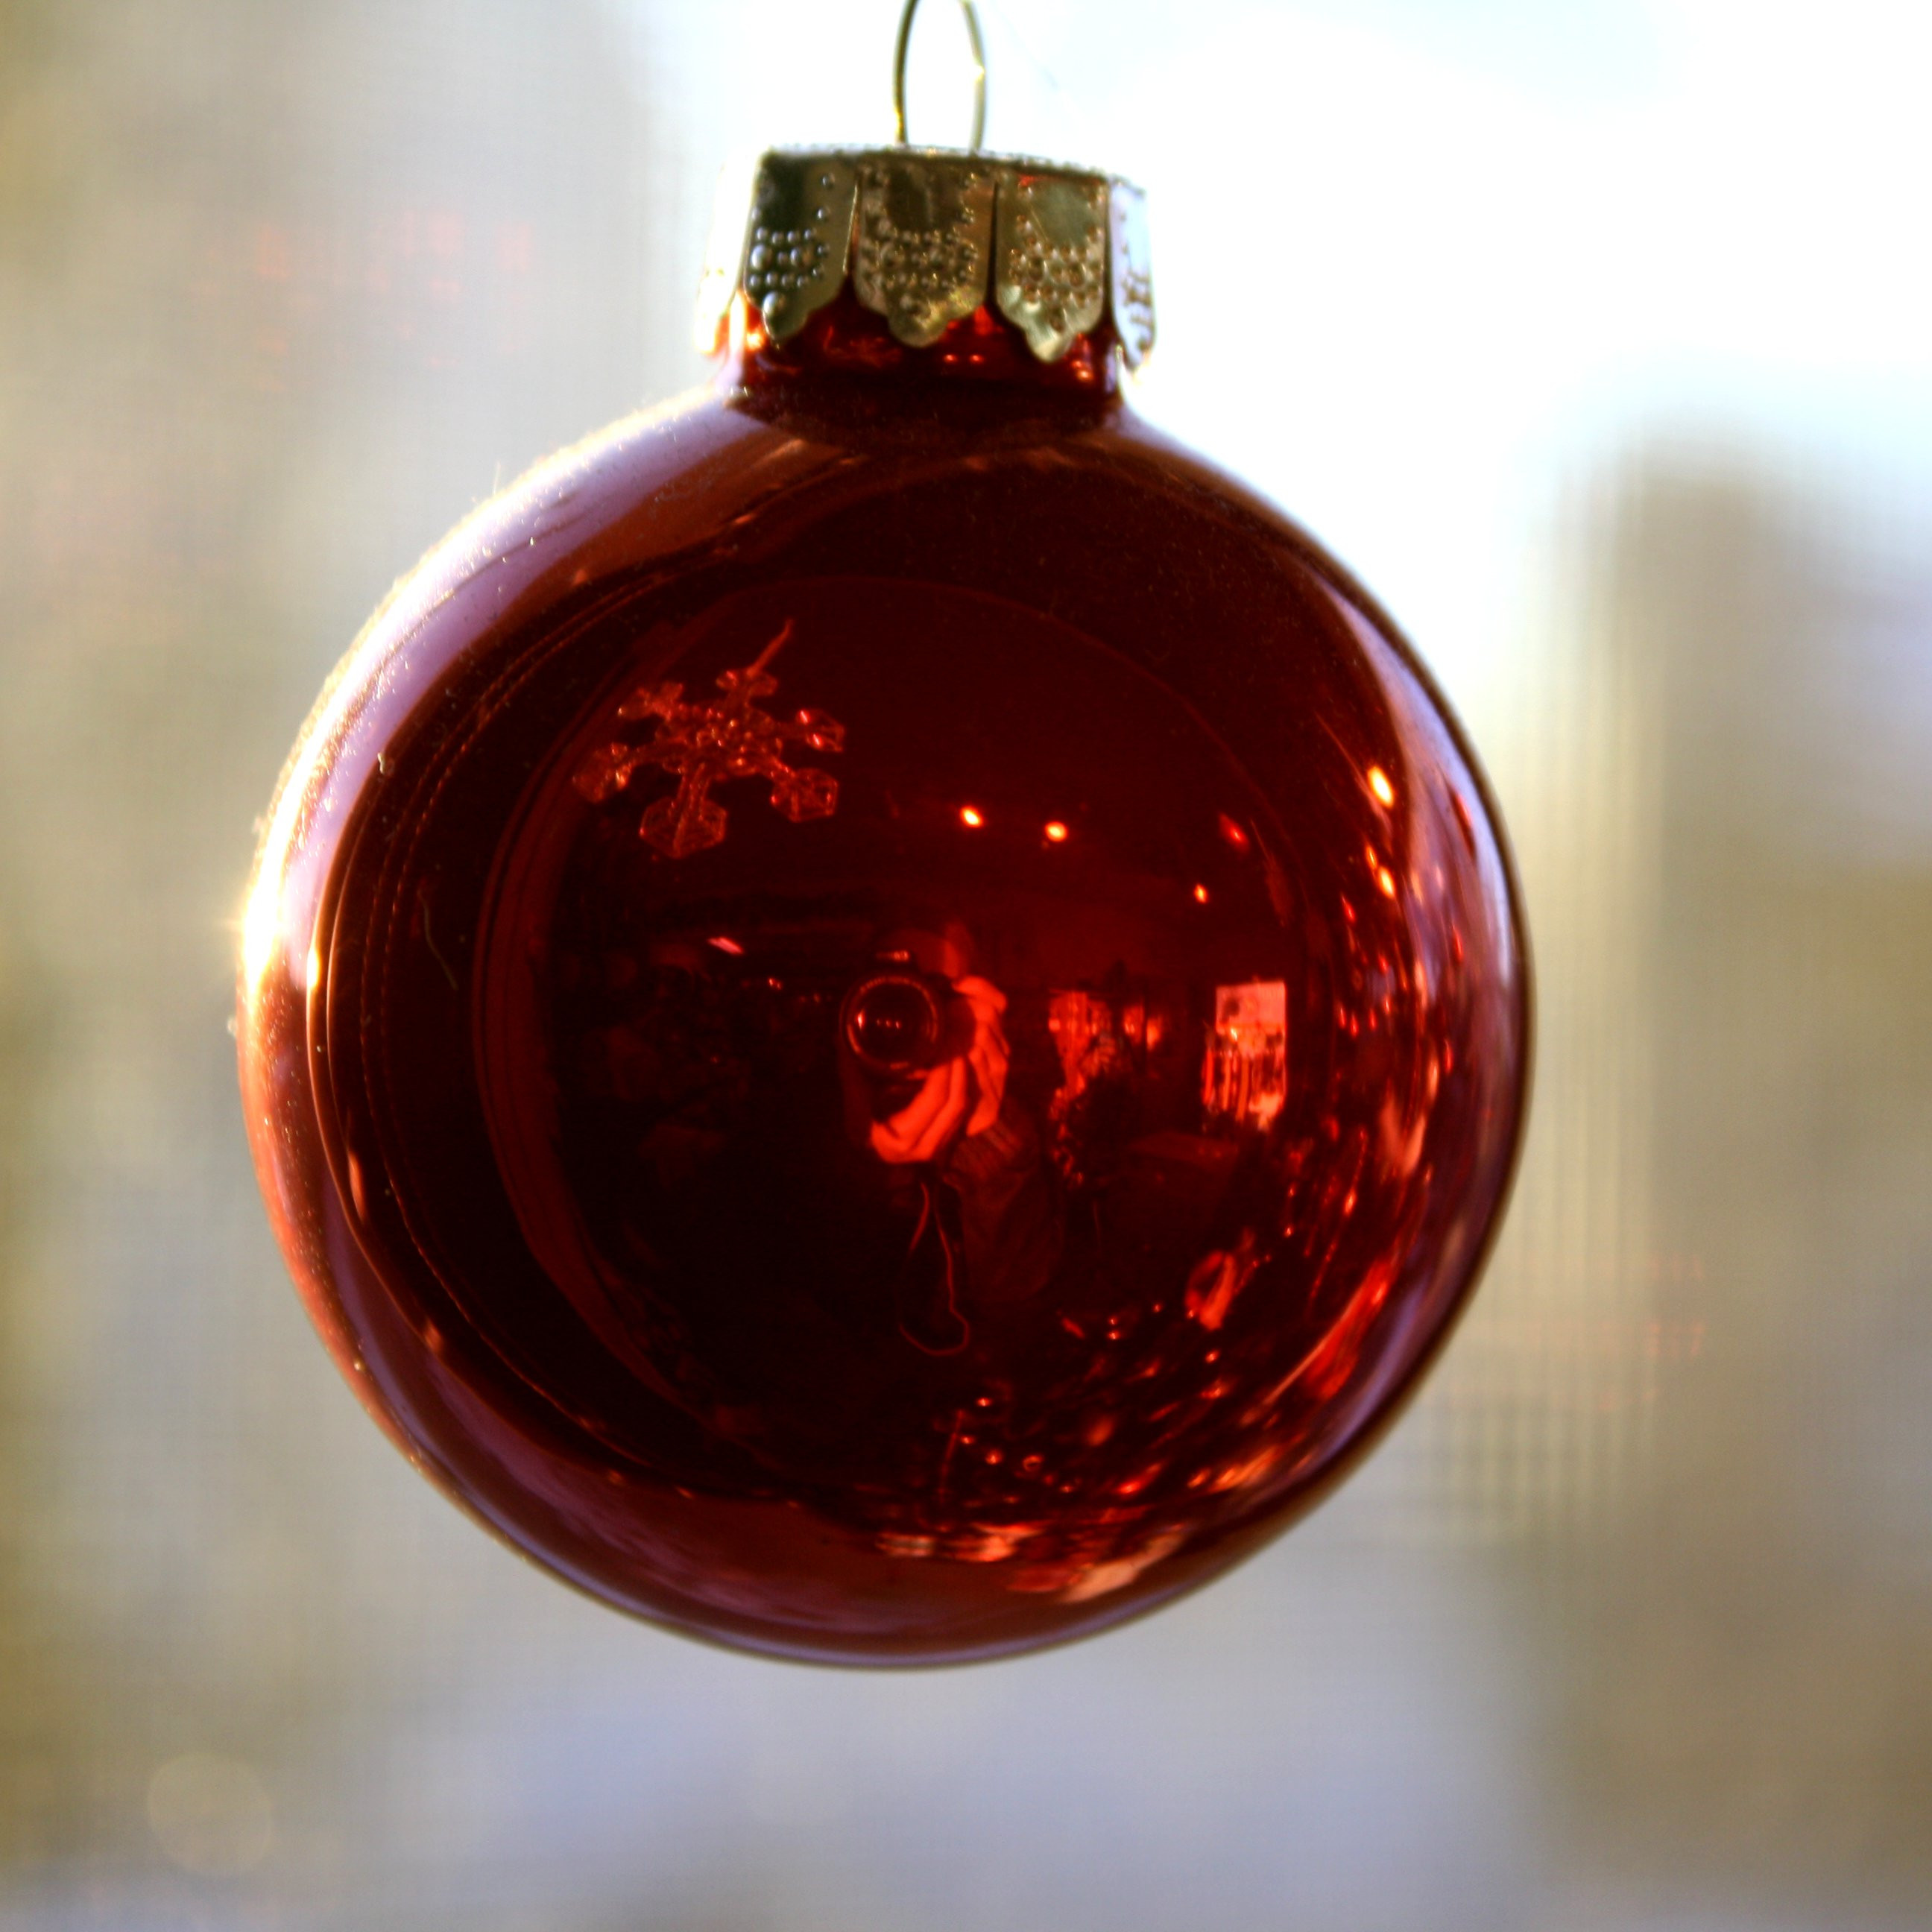 Red Christmas Tree ornaments Awesome Red Christmas Ball ornament Picture Of Attractive 44 Pics Red Christmas Tree ornaments